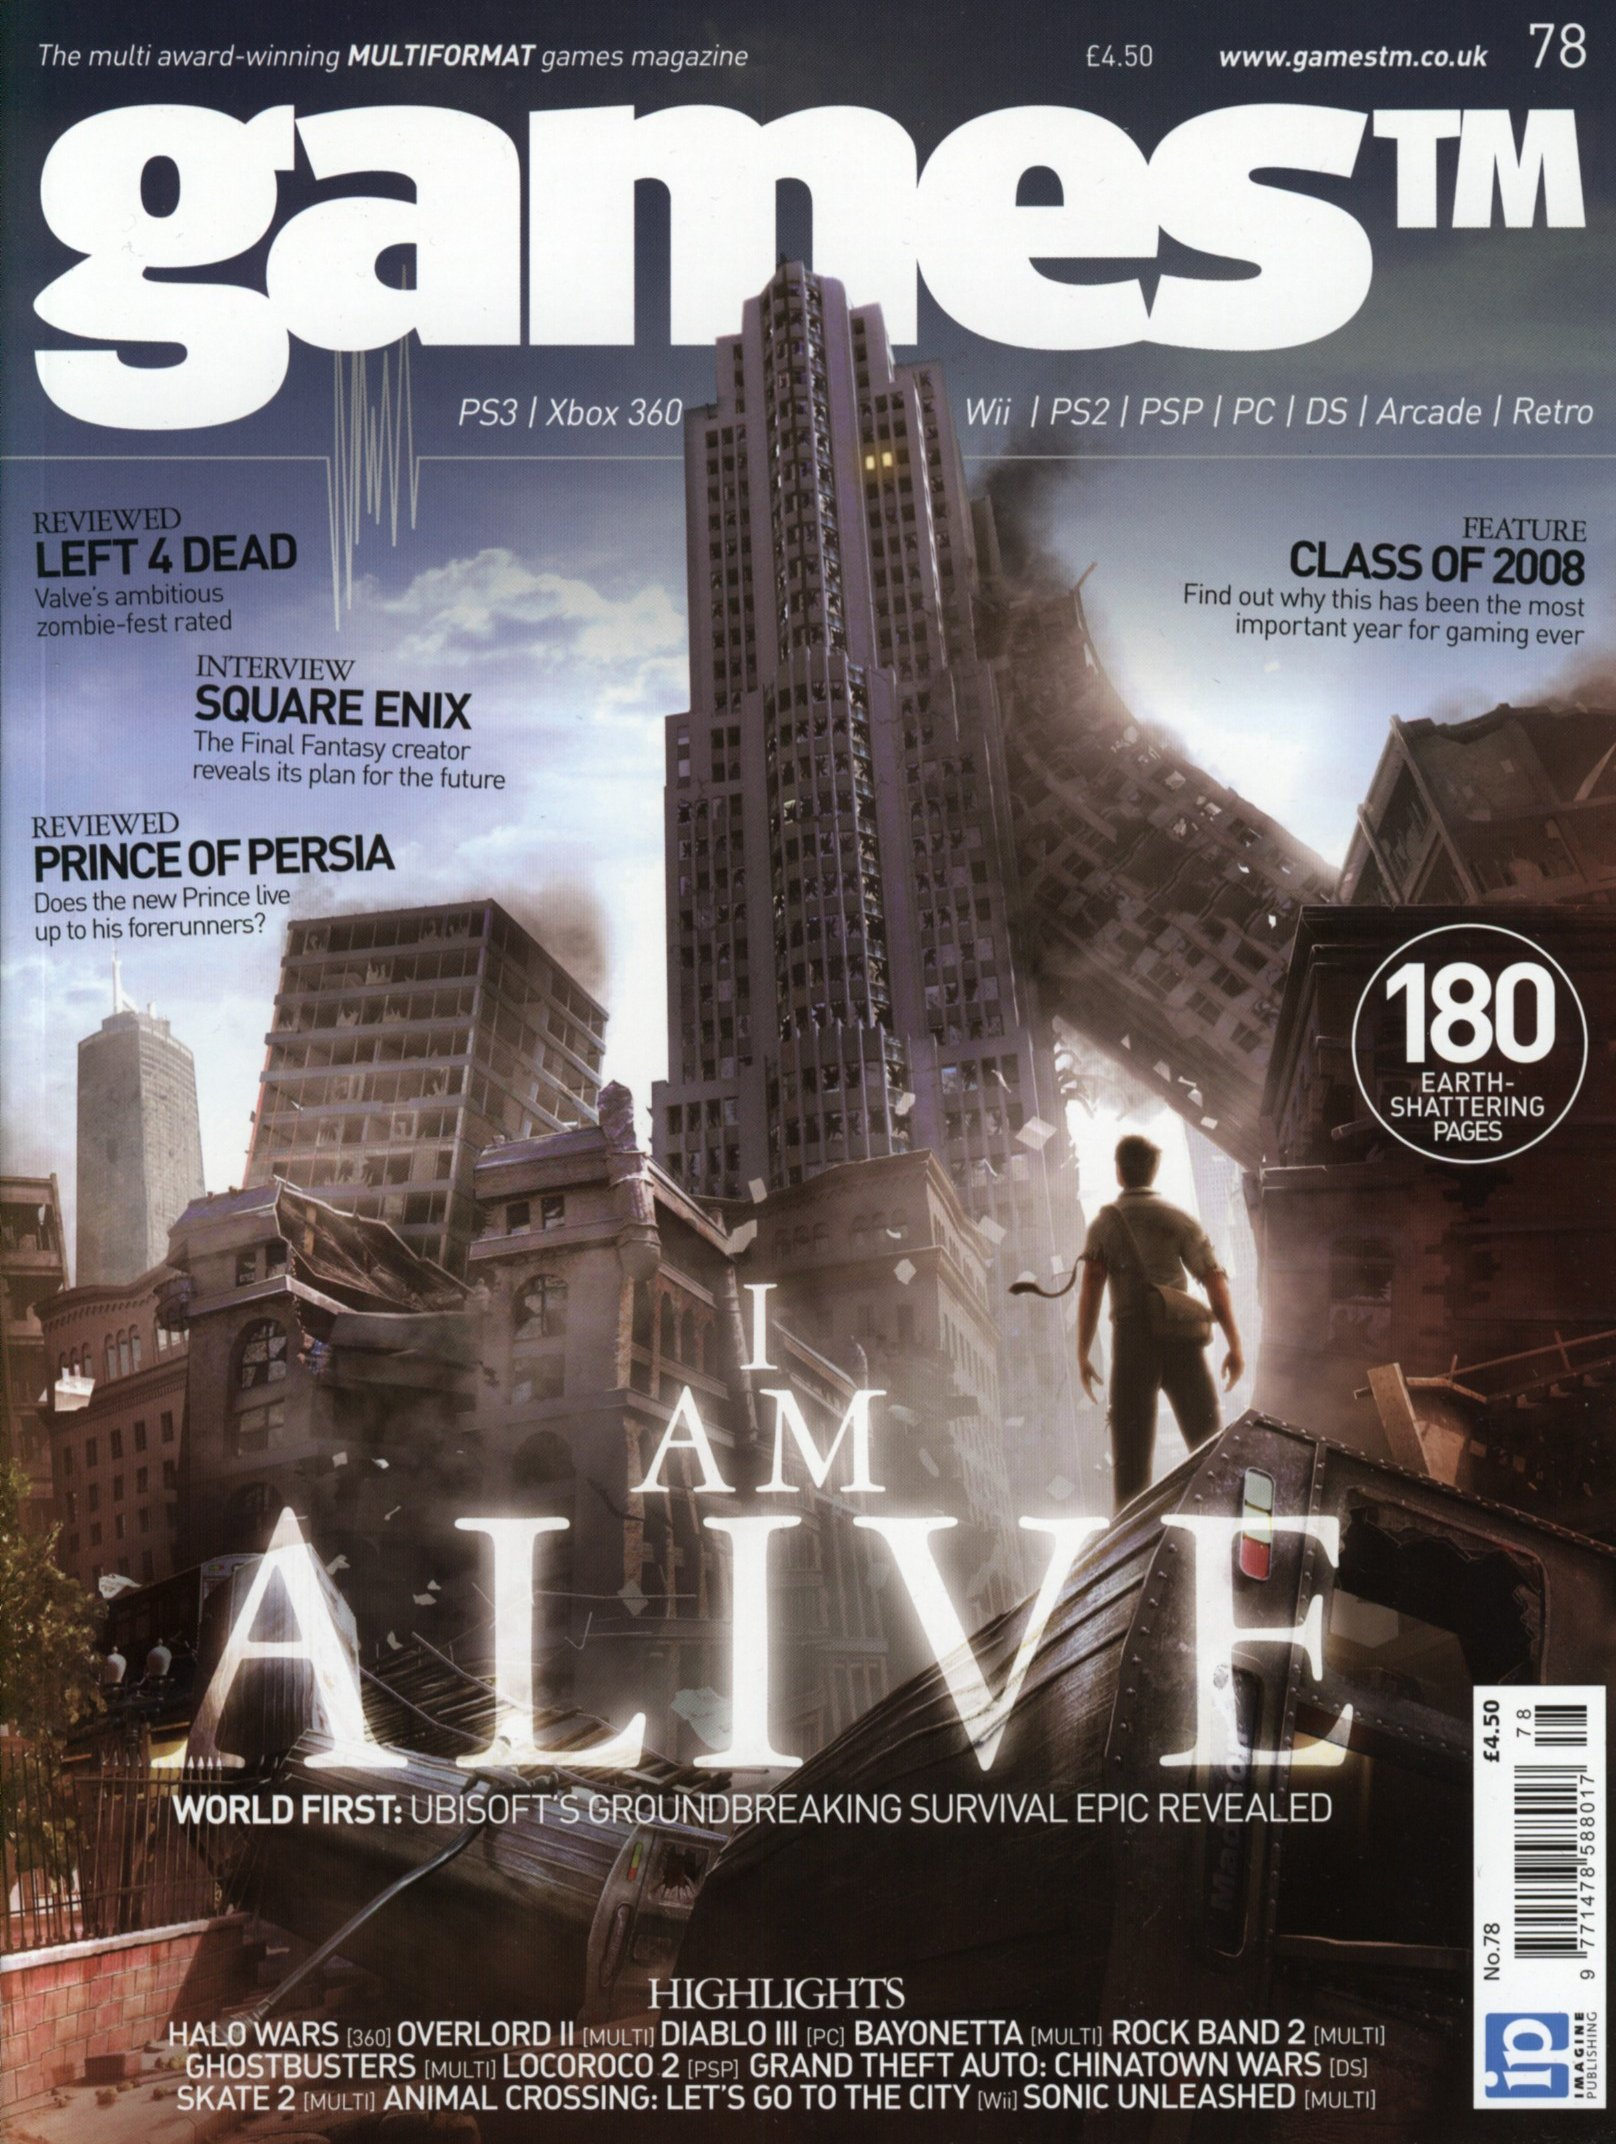 Games TM Issue 078 (Christmas 2008)